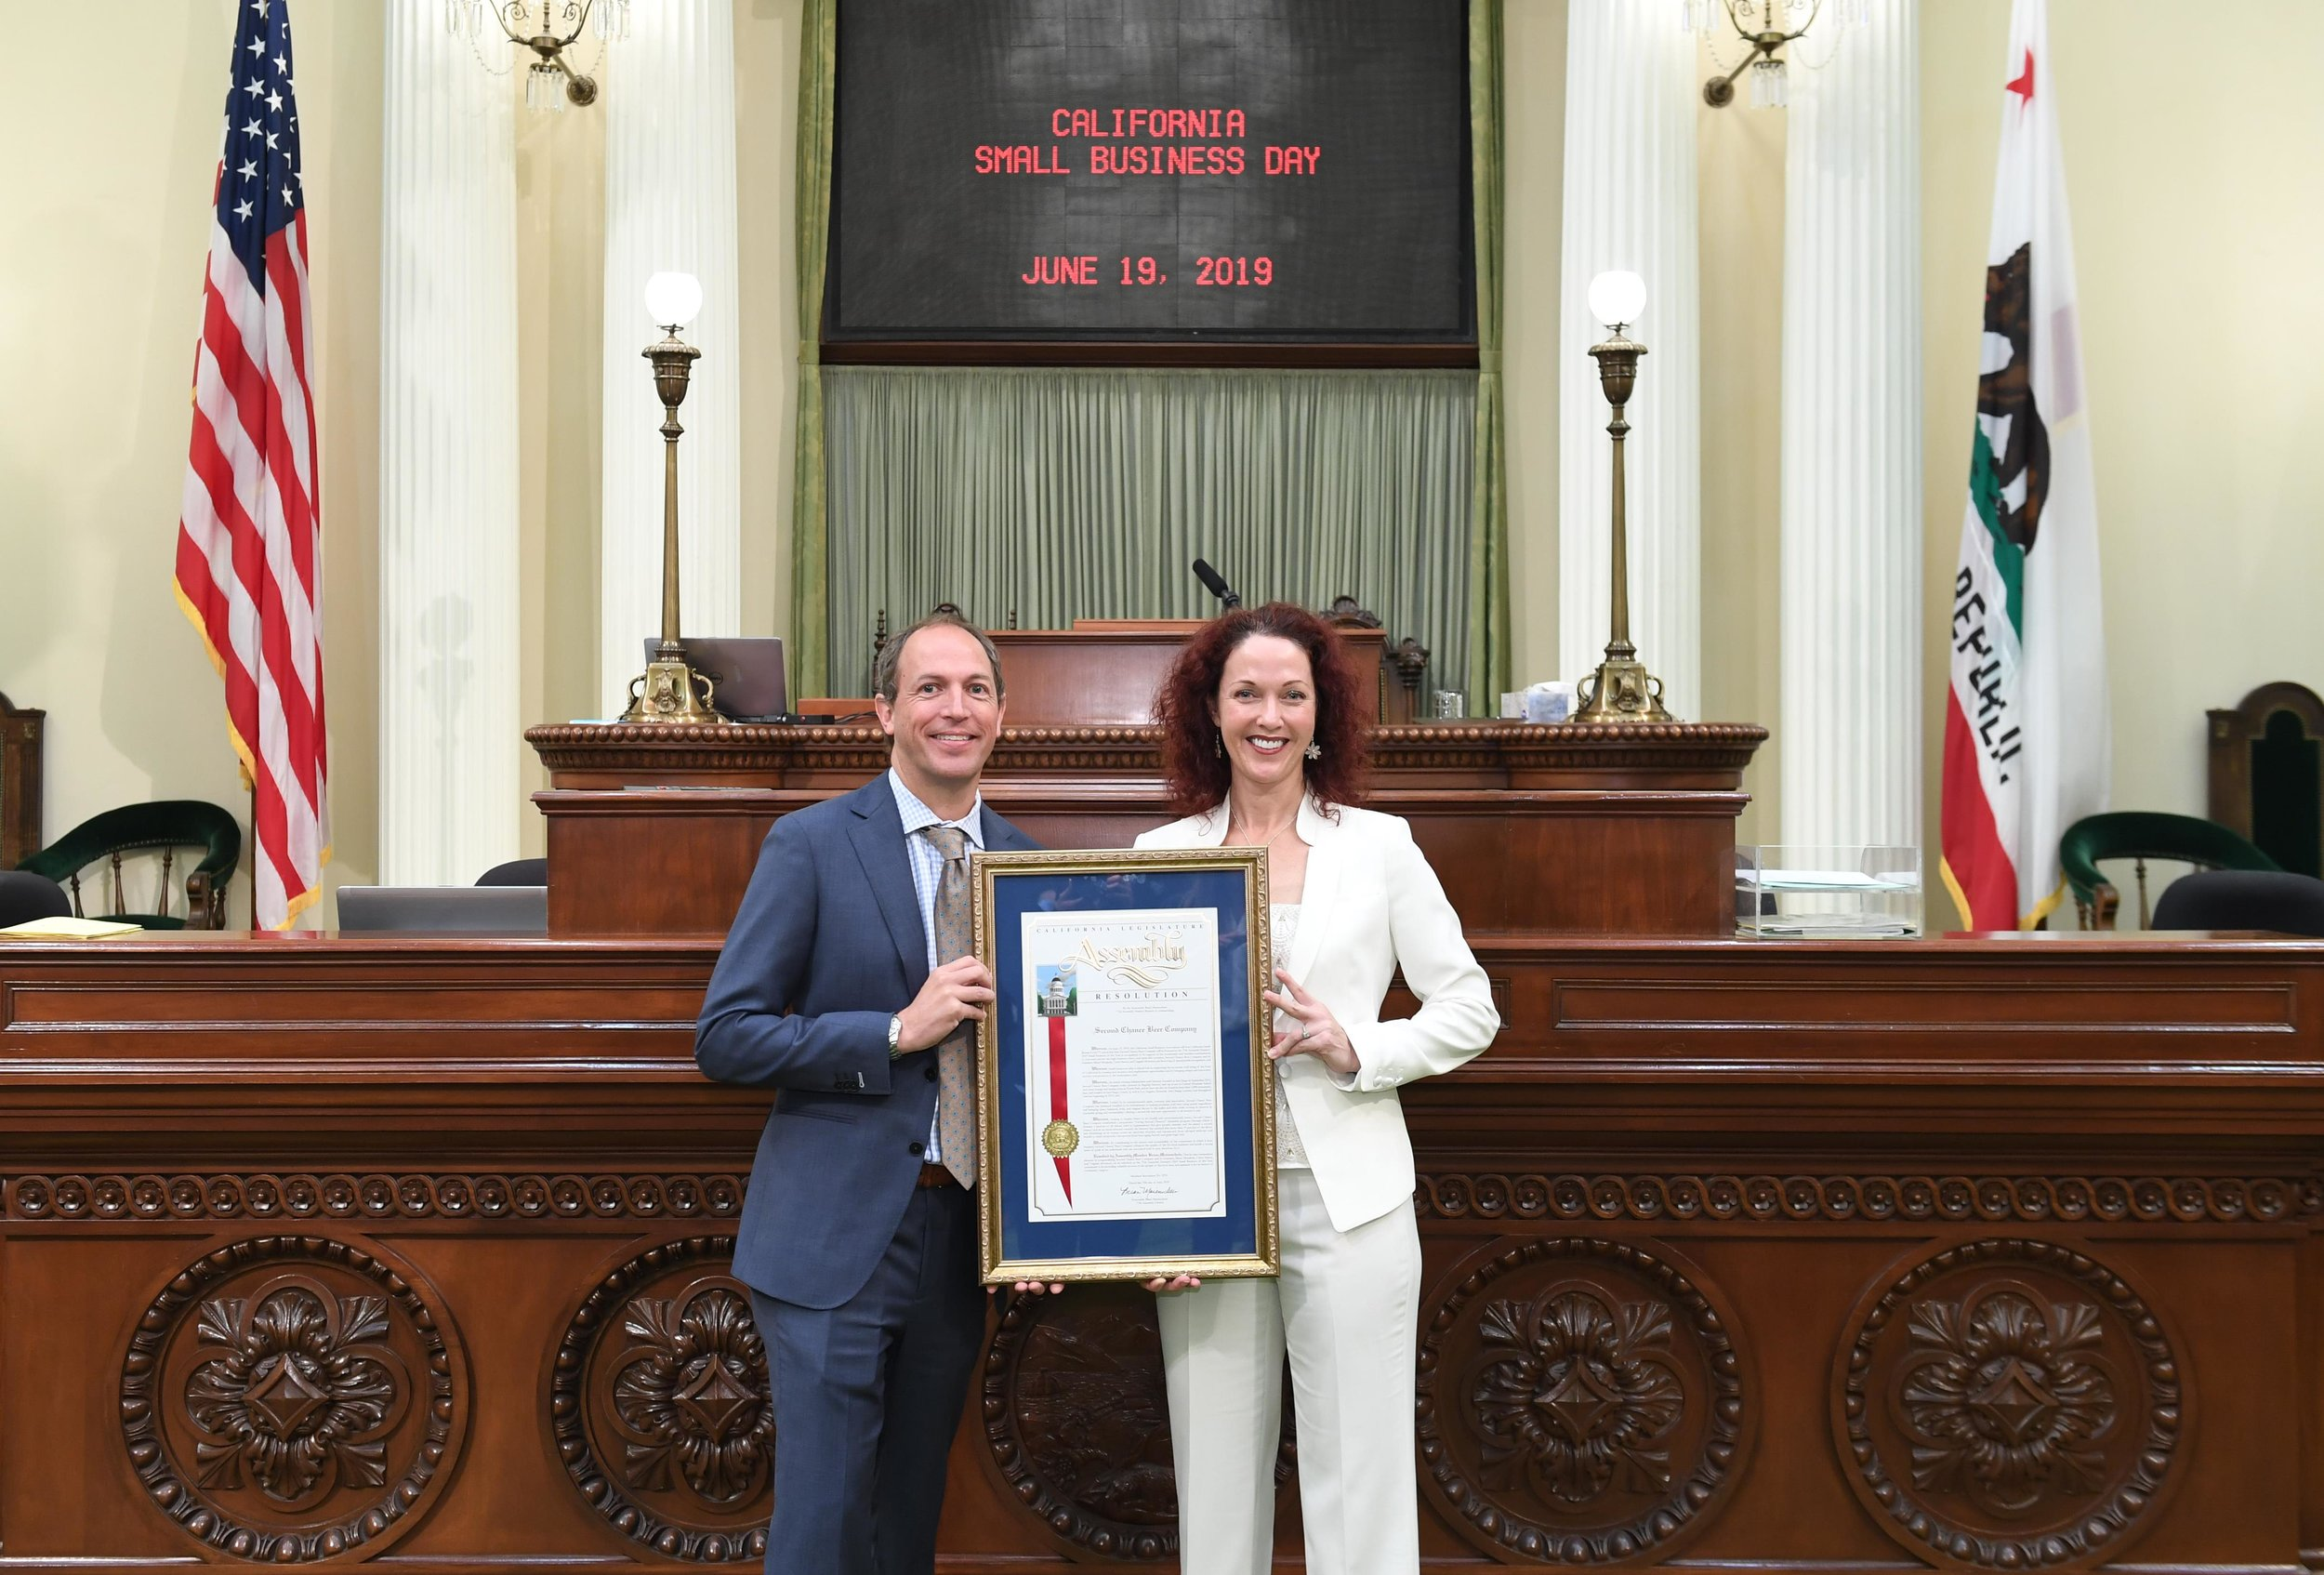 Assemblymember Brian Maienschein presents co-owner Virginia Morrison with a plaque recognizing Second Chance Beer Co. as the 2019 Small Business of the Year for the 77th California Assembly District.